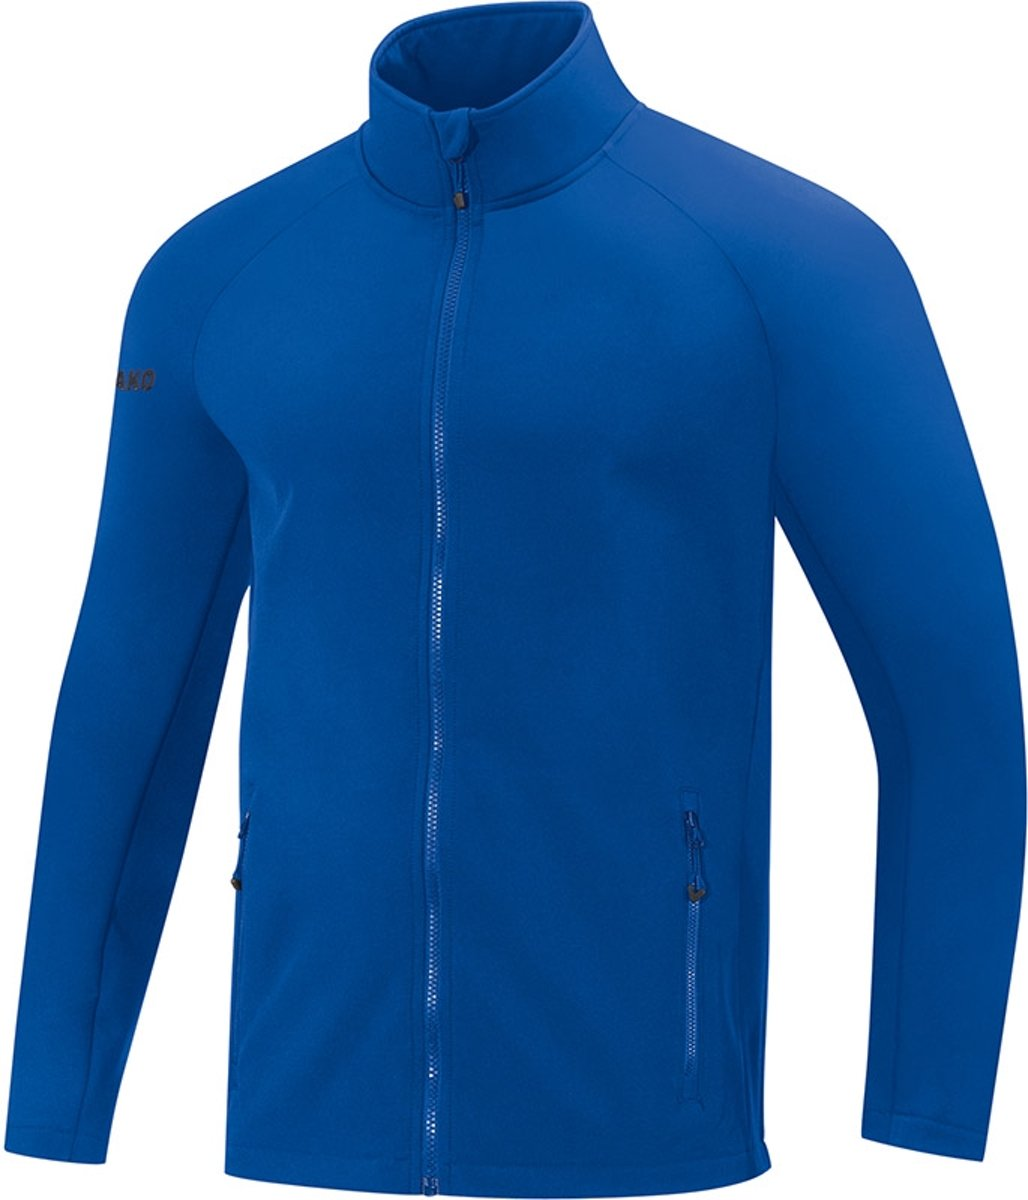 Jako Team Dames Softshell Jas - Softshelljassen  - blauw - 34